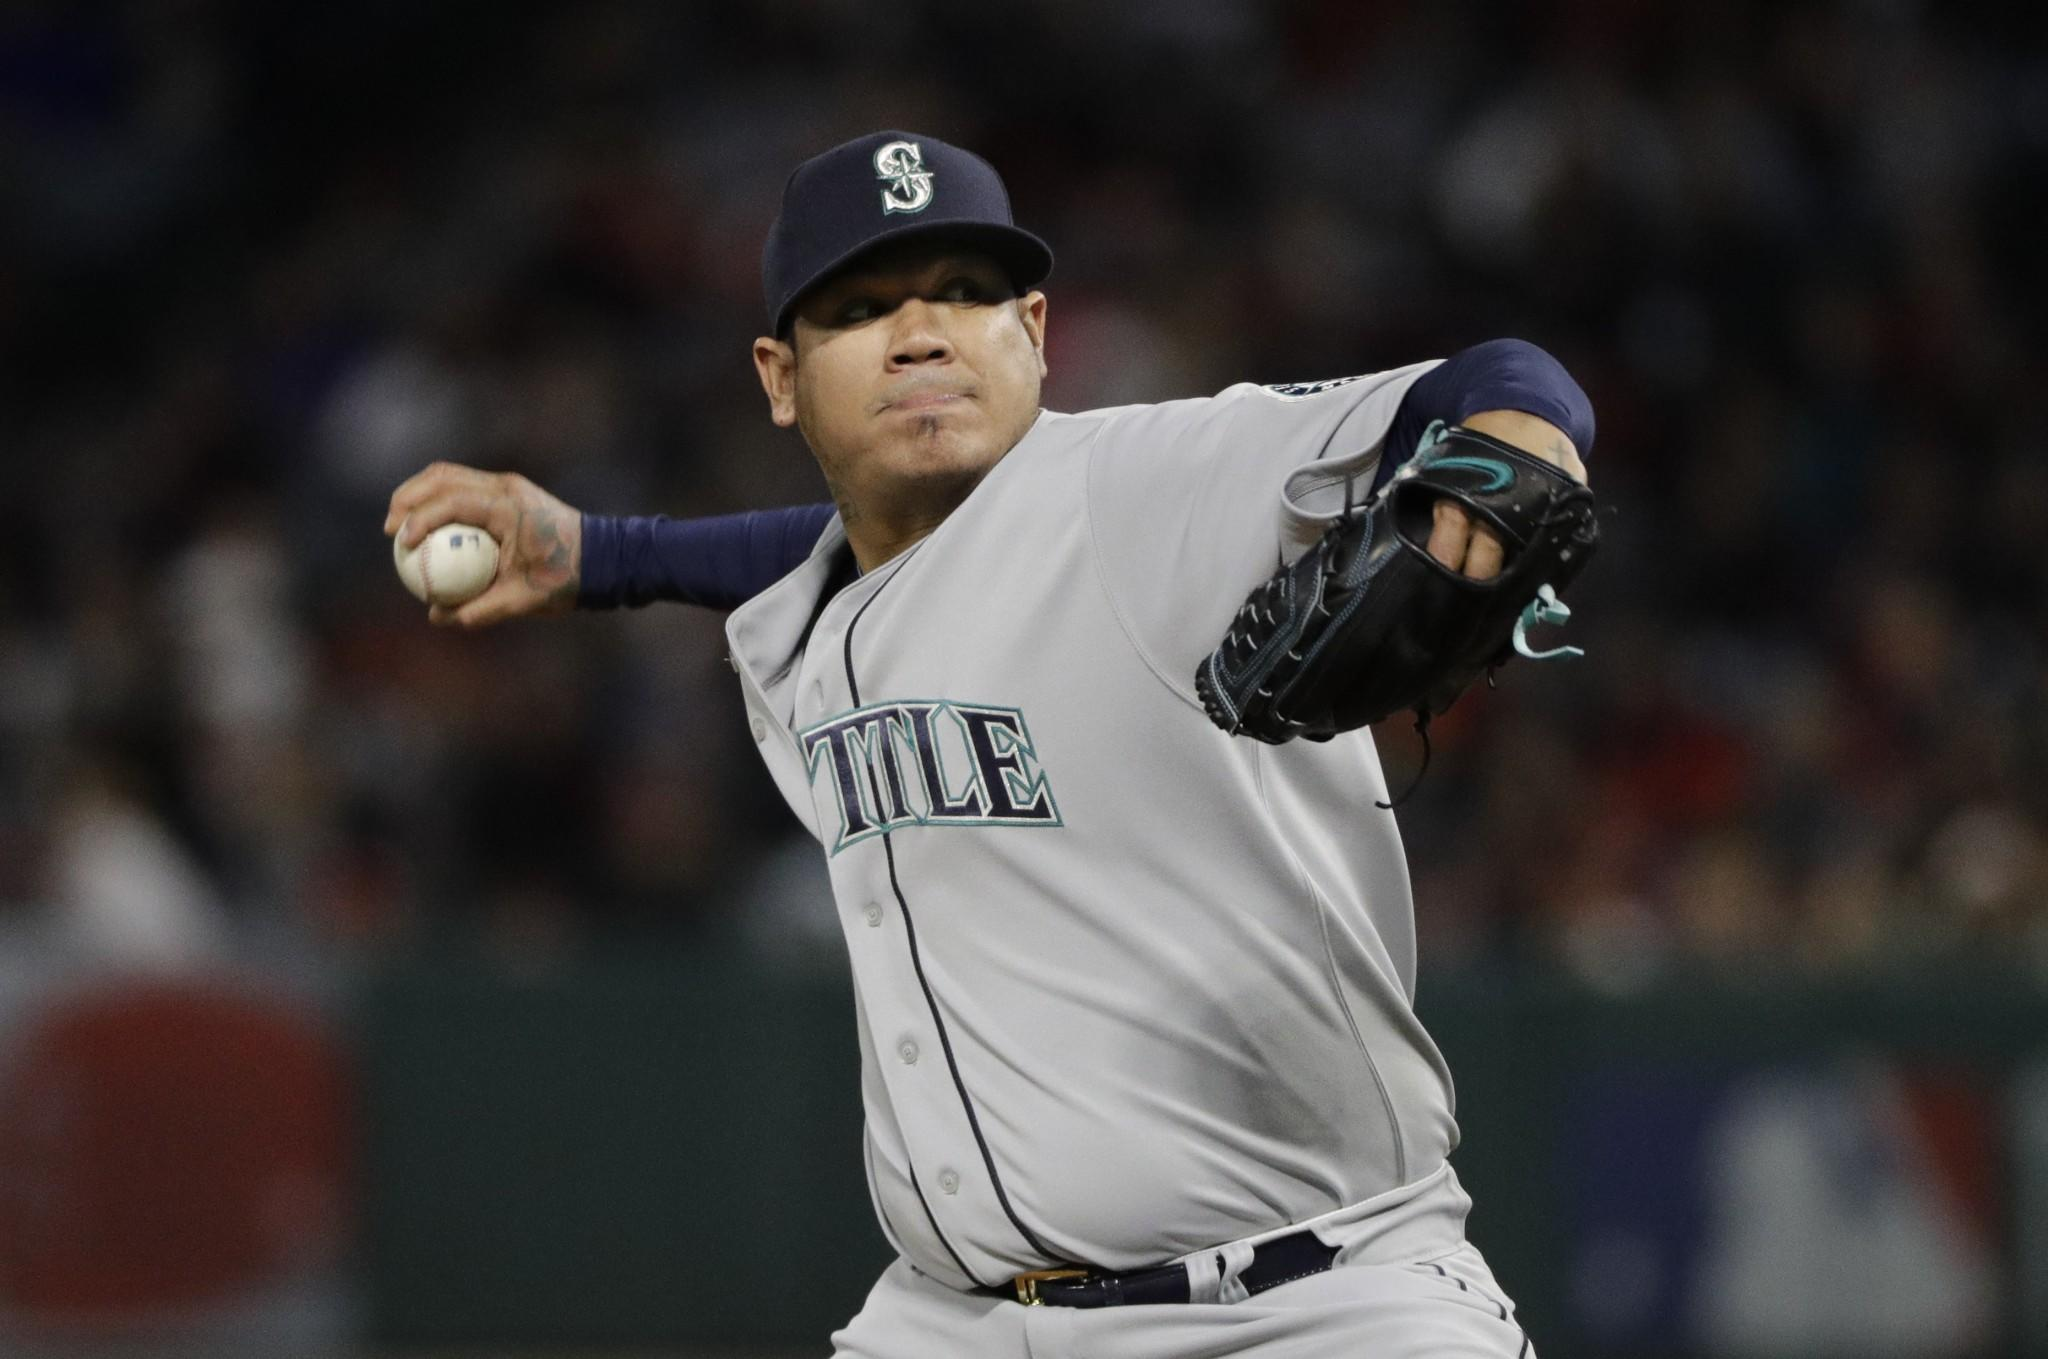 The Mariners need Felix Hernandez to find his old form and ...